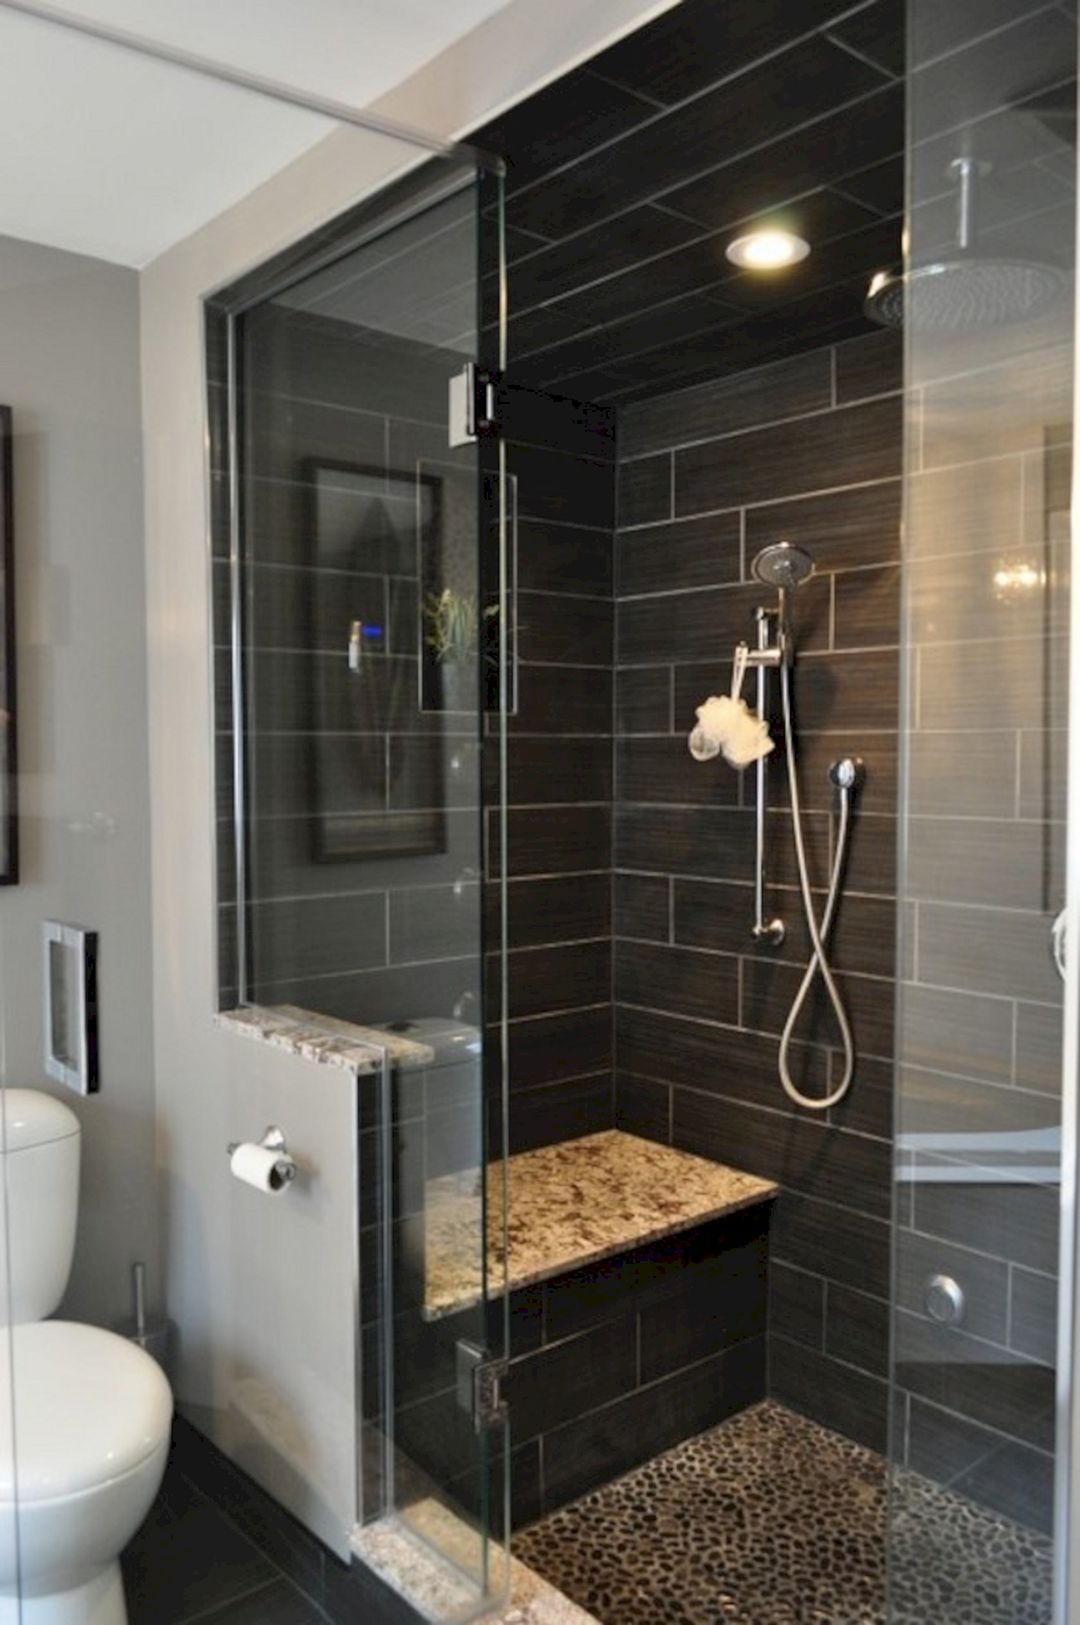 Marvelous 20 Small Bathroom Glass Shower Ideas That Will Make More Enjoyable When Take Bath Ht Bathroom Design Small Bathroom Remodel Shower Bathrooms Remodel